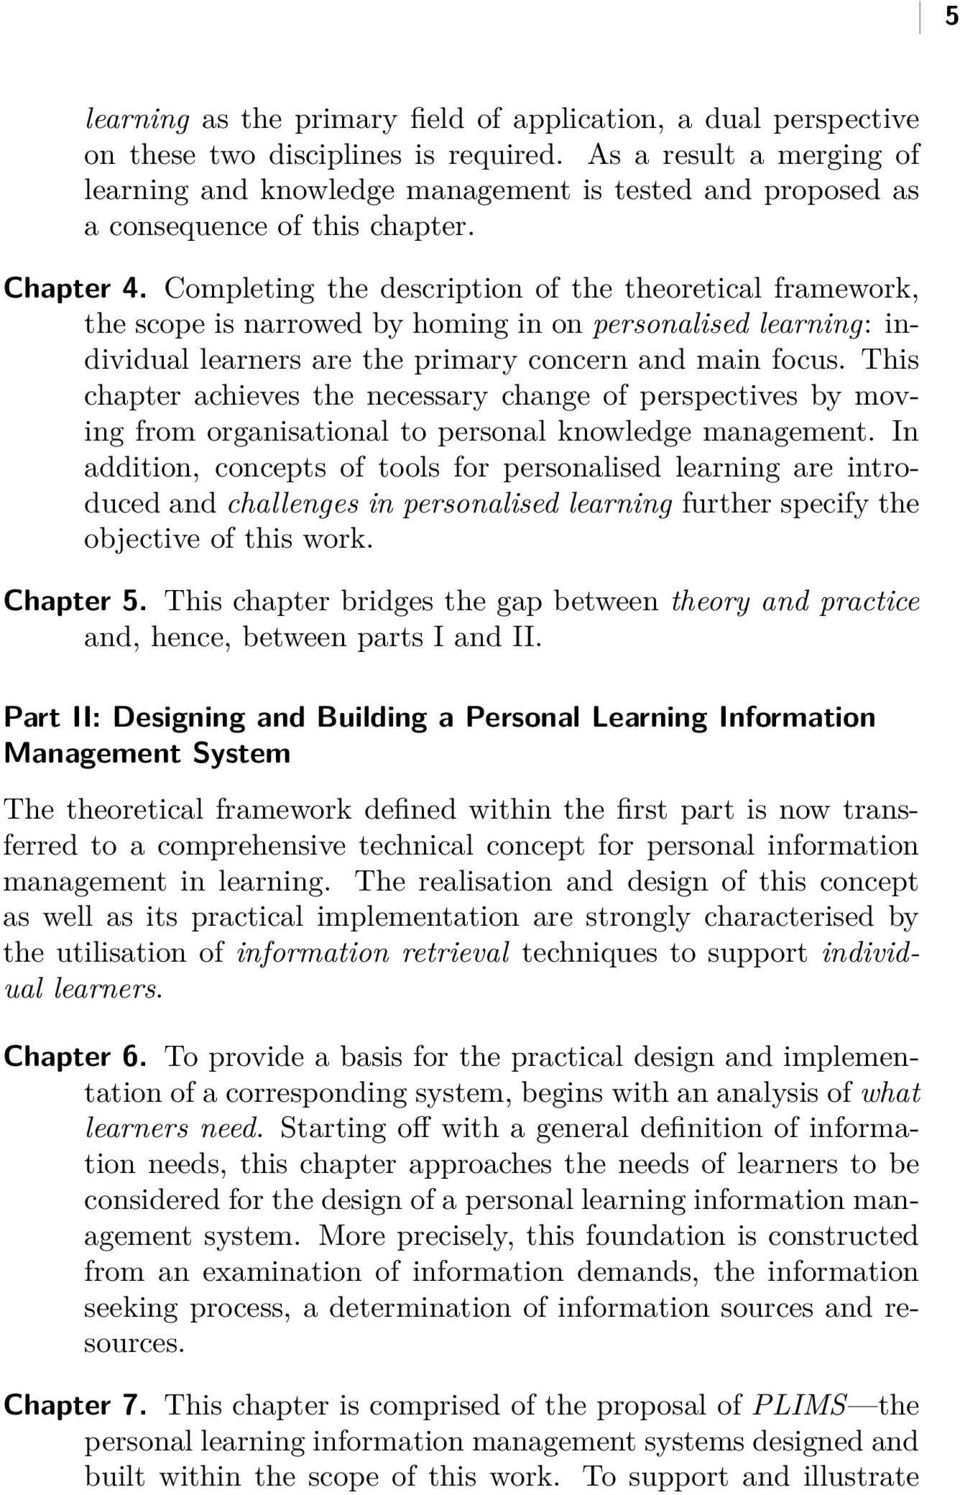 Completing the description of the theoretical framework, the scope is narrowed by homing in on personalised learning: individual learners are the primary concern and main focus.